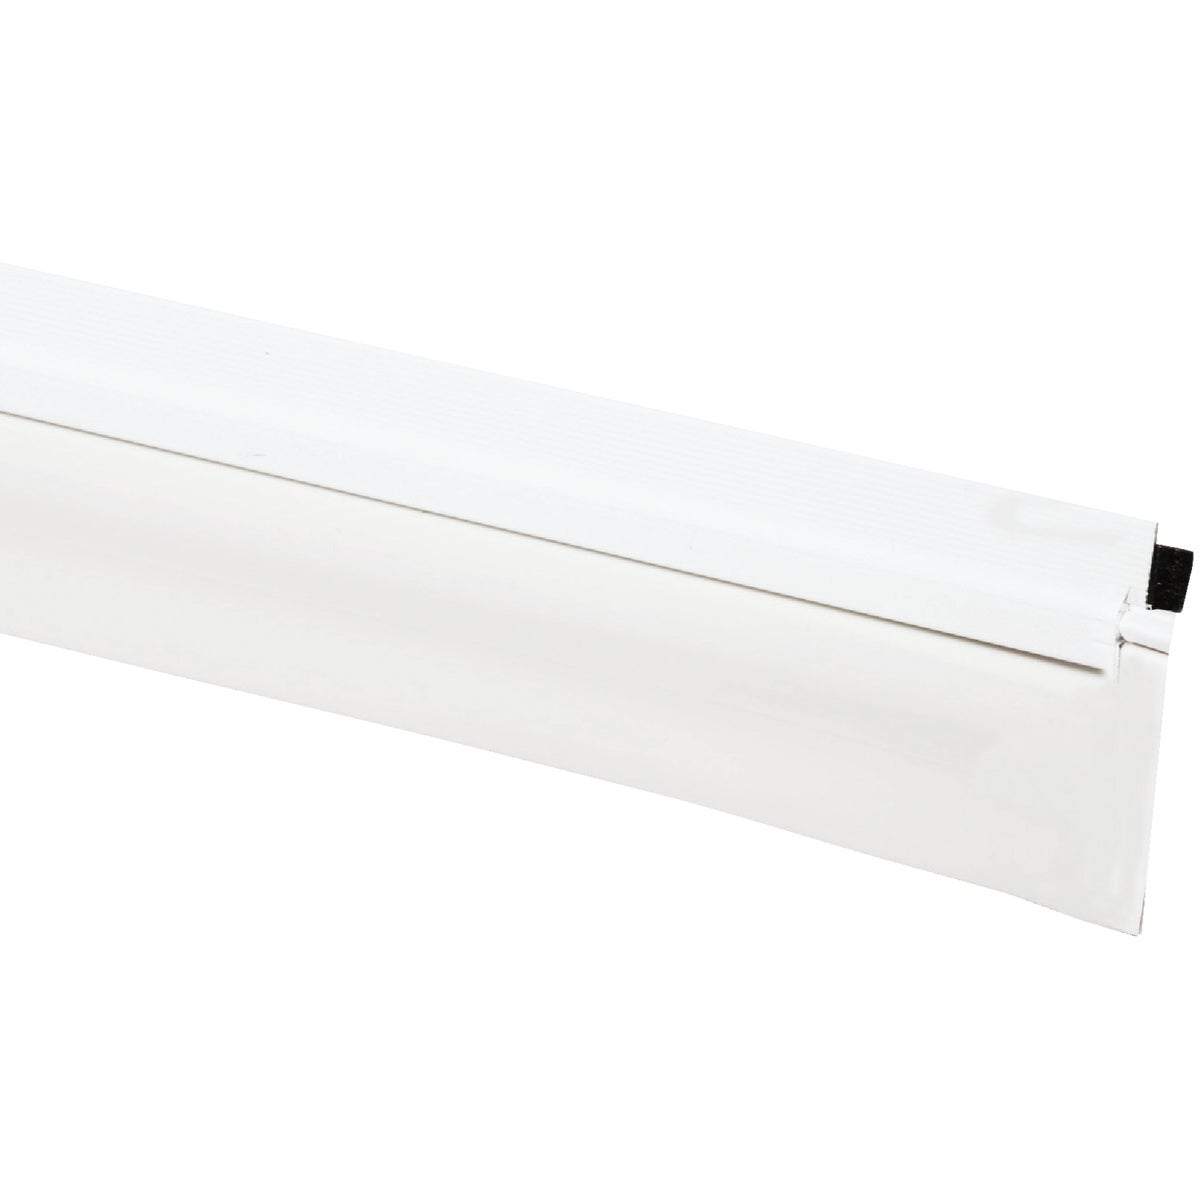 "36"" WHT DOOR SEAL BOTTOM - 43301 by M D Building Prod"